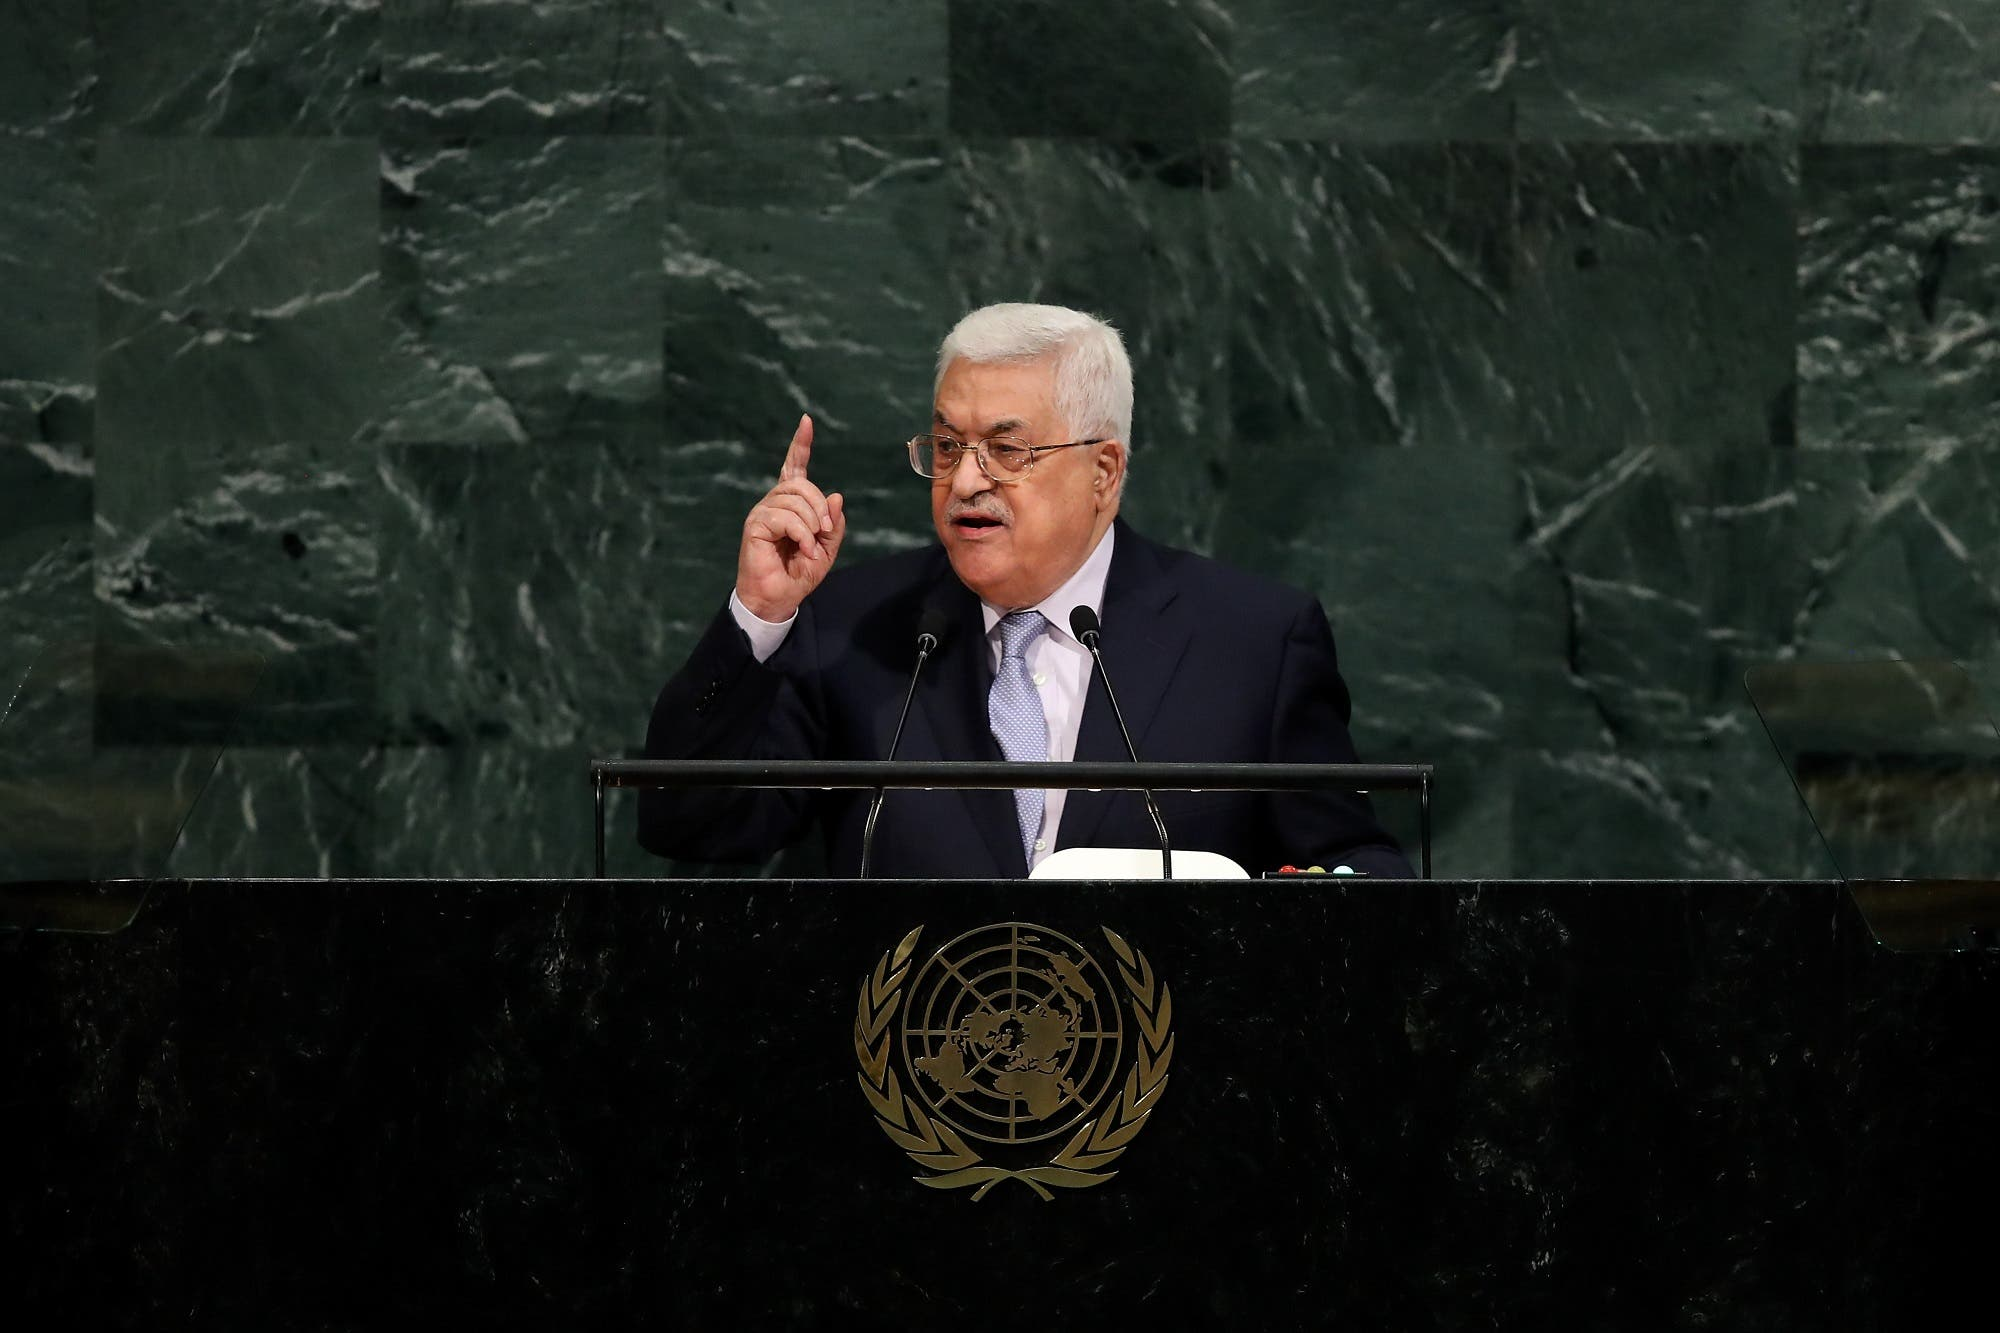 Mahmoud Abbas addresses the UN General Assembly at UN headquarters, September 20, 2017 in New York City. (AFP)